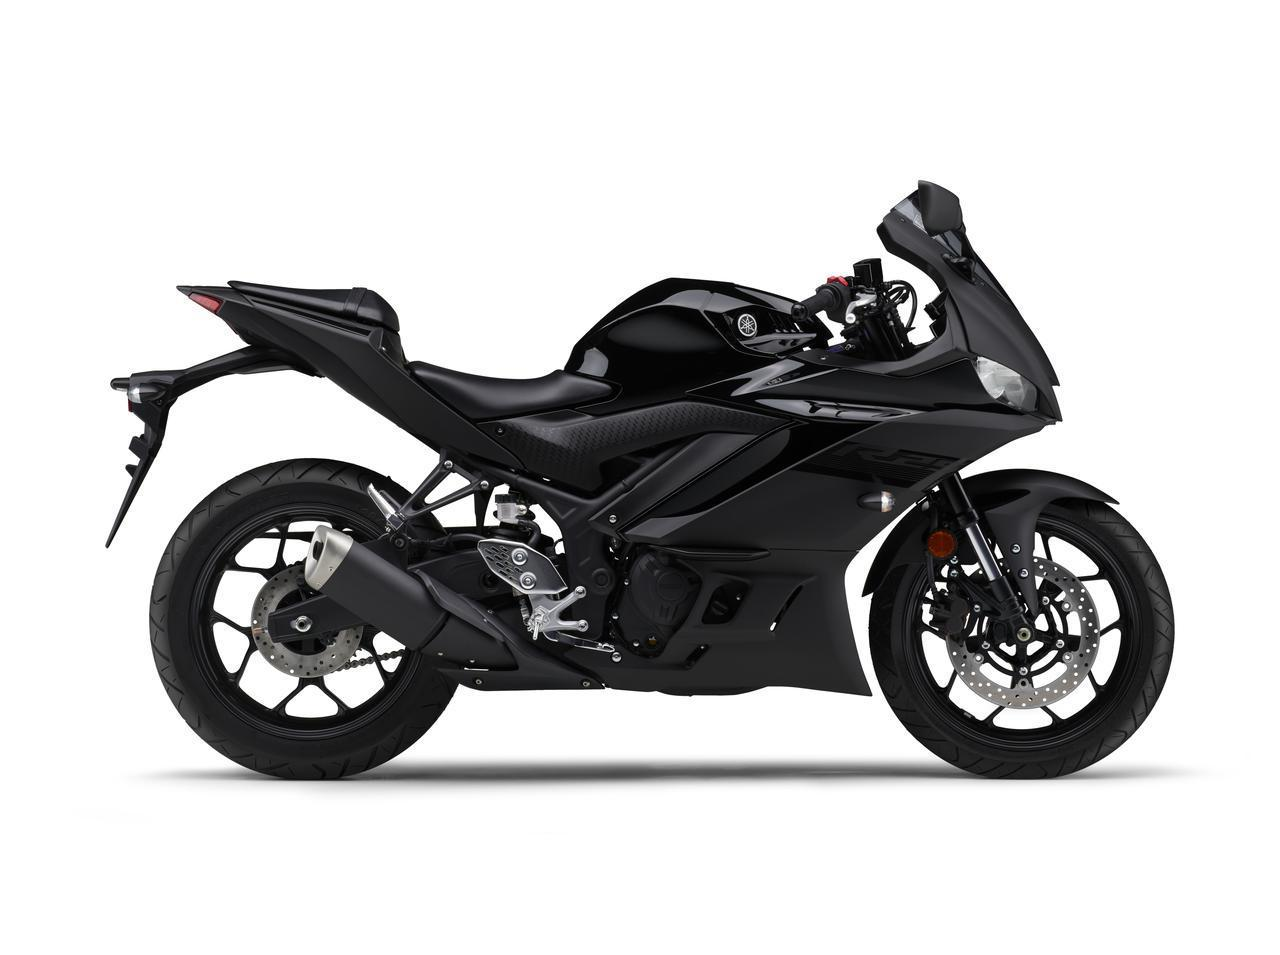 Images : 7番目の画像 - ヤマハ YZF-R25の写真をまとめて見る! - LAWRENCE - Motorcycle x Cars + α = Your Life.